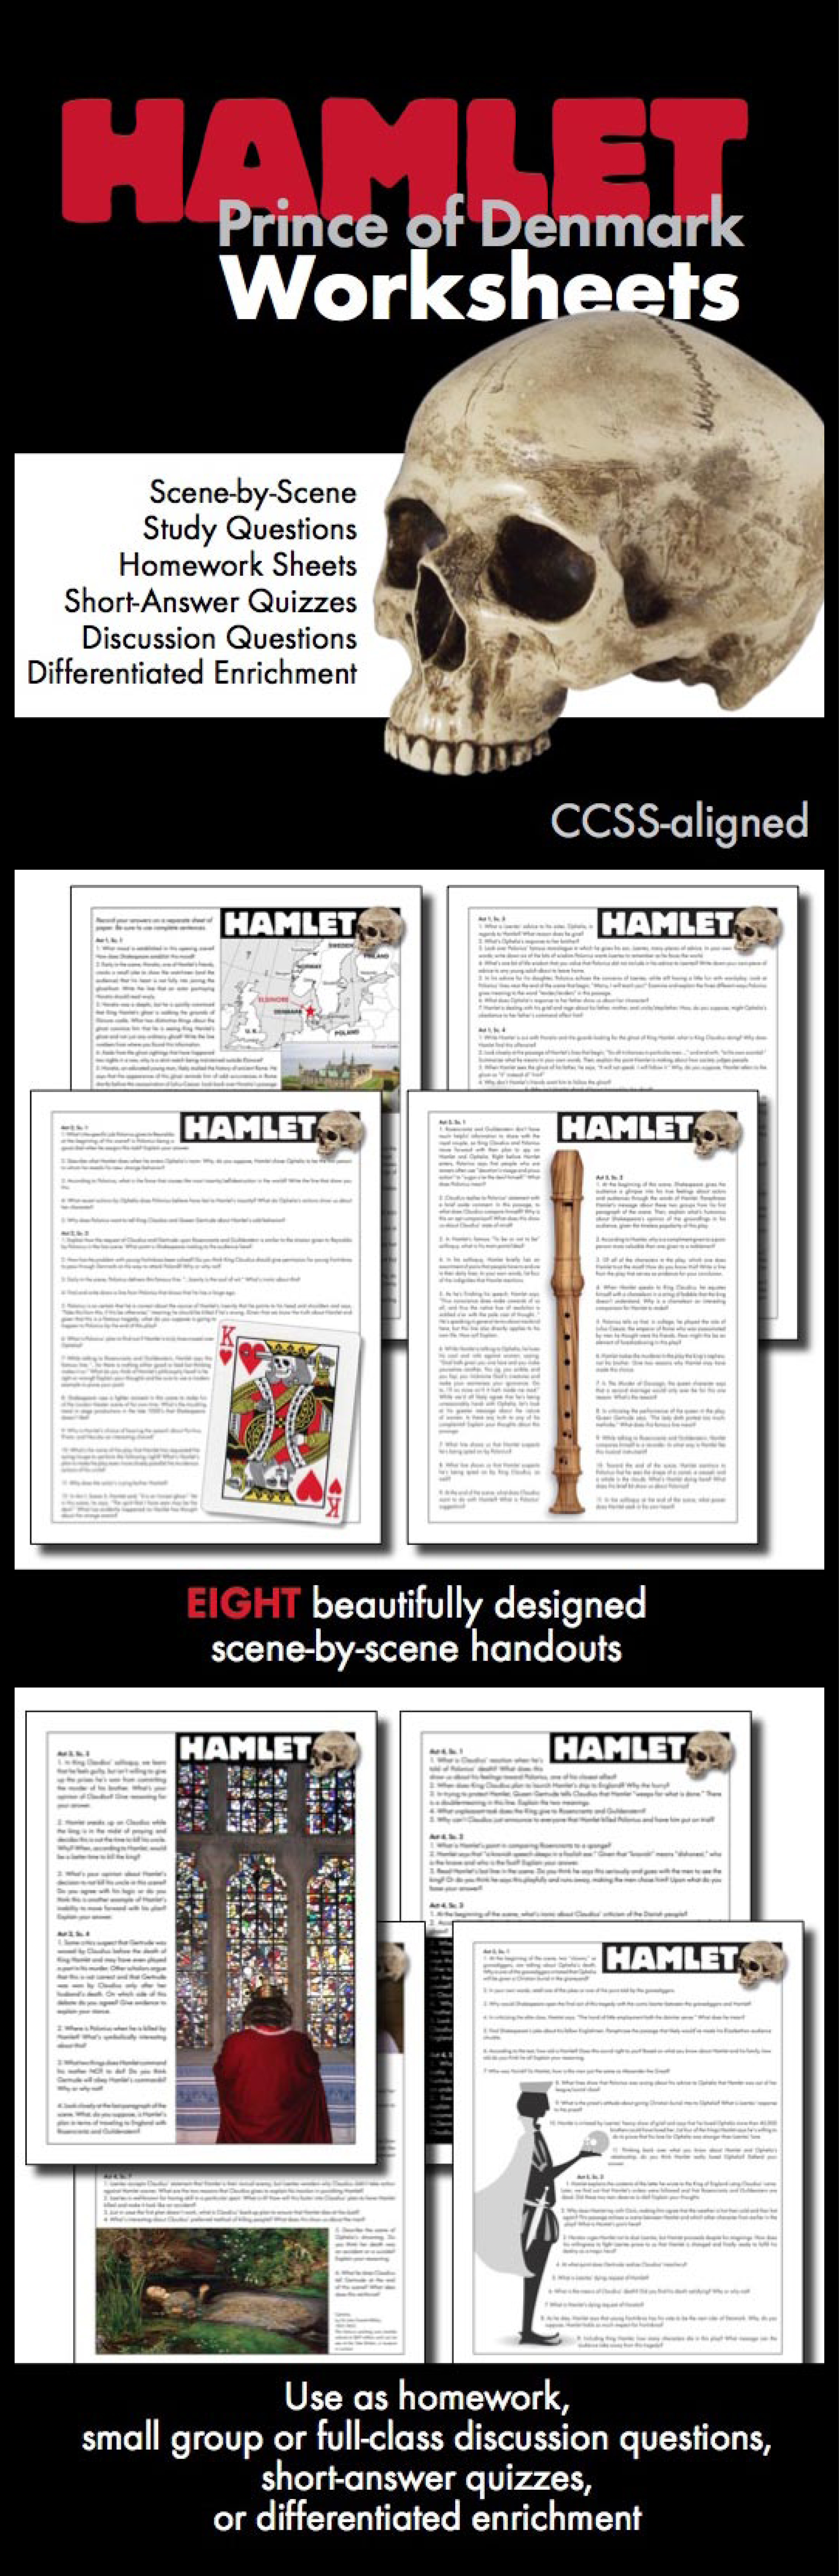 Hamlet Worksheets Quizzes Discussion Amp Hw For William Shakespeare S Play